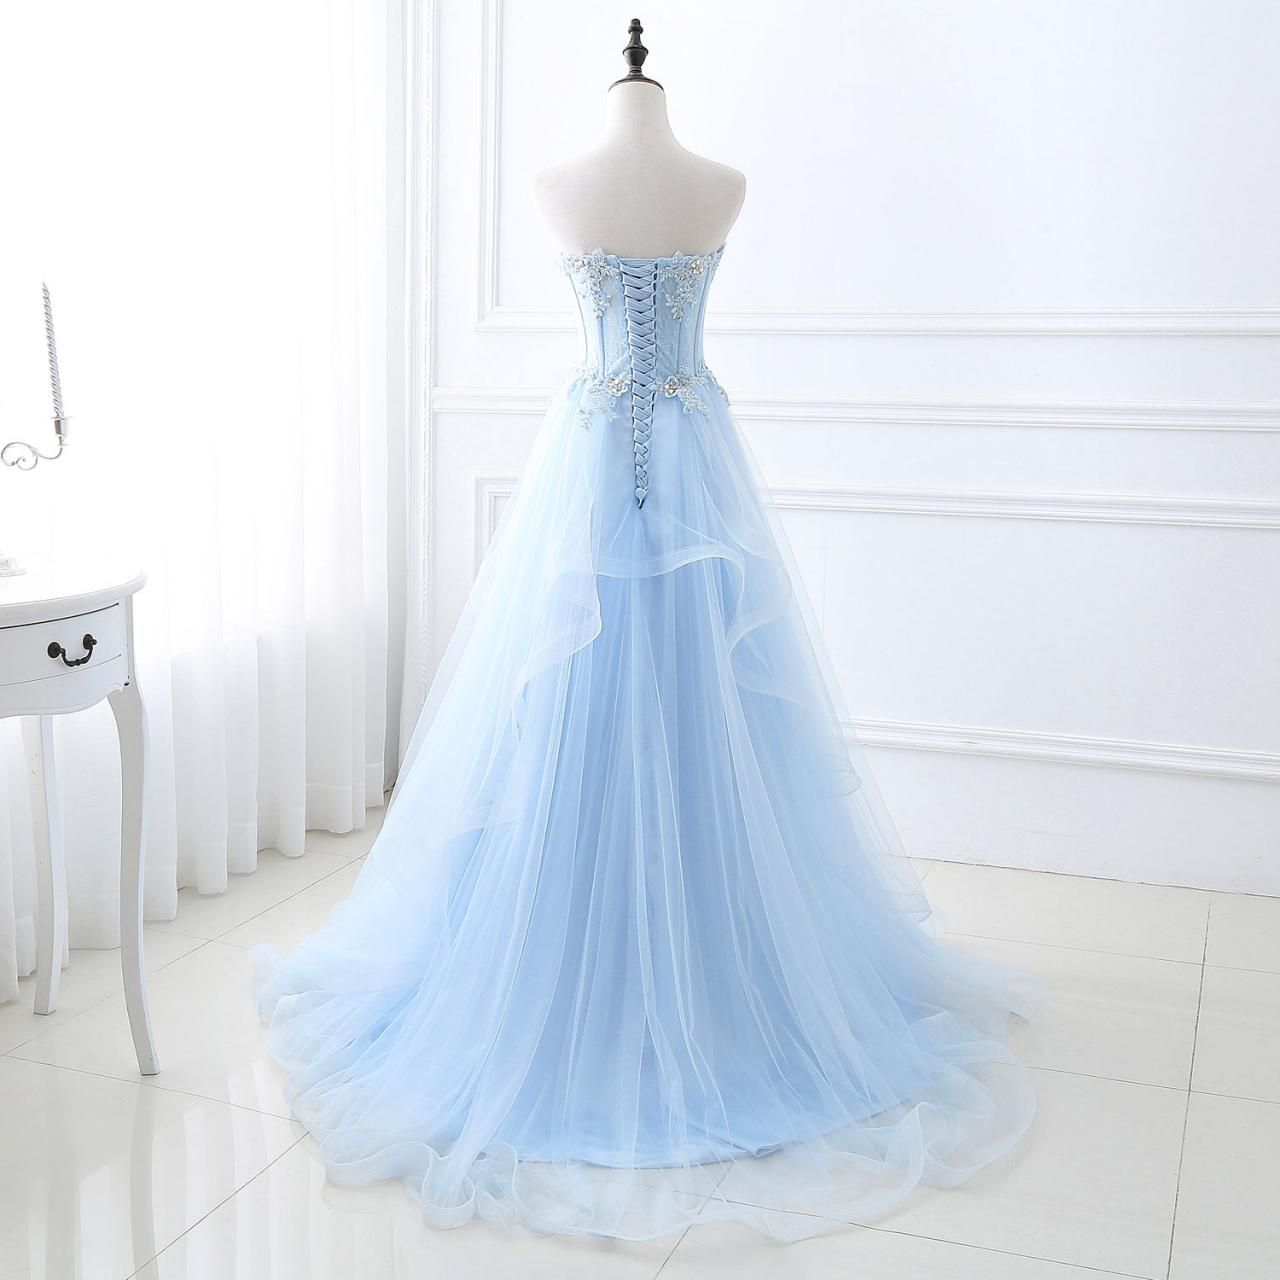 Sky blue appliques tulle crystals prom gownssweetheart neck a line